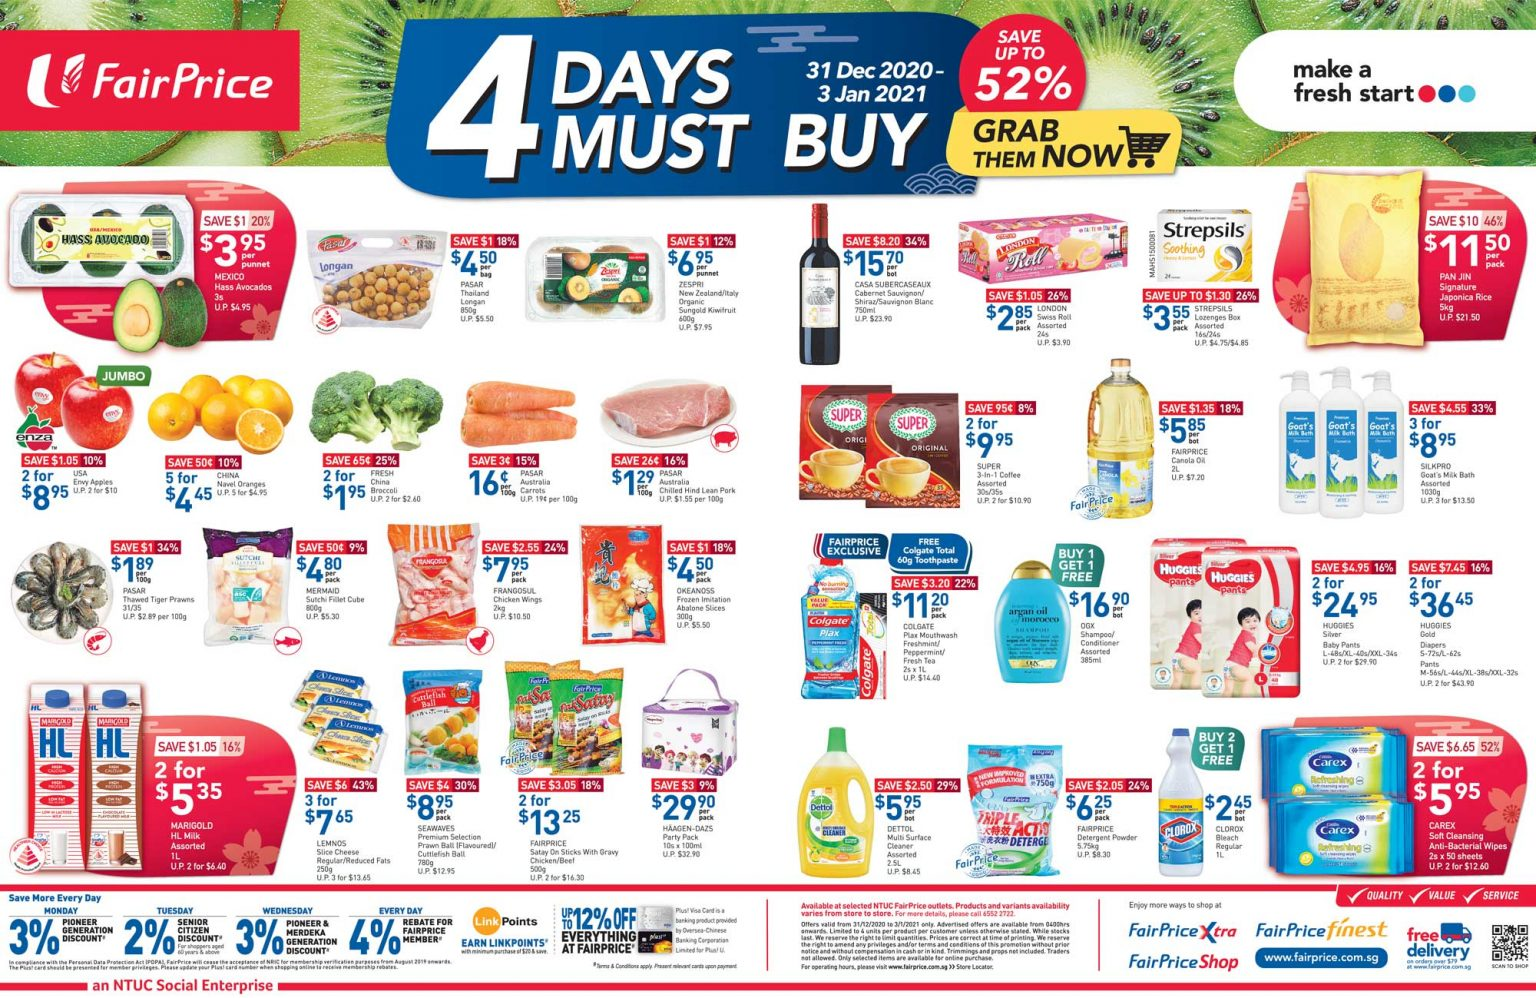 FairPrice's 4 days must-buy items from 31 Dec 2020 - 3 Jan 2021